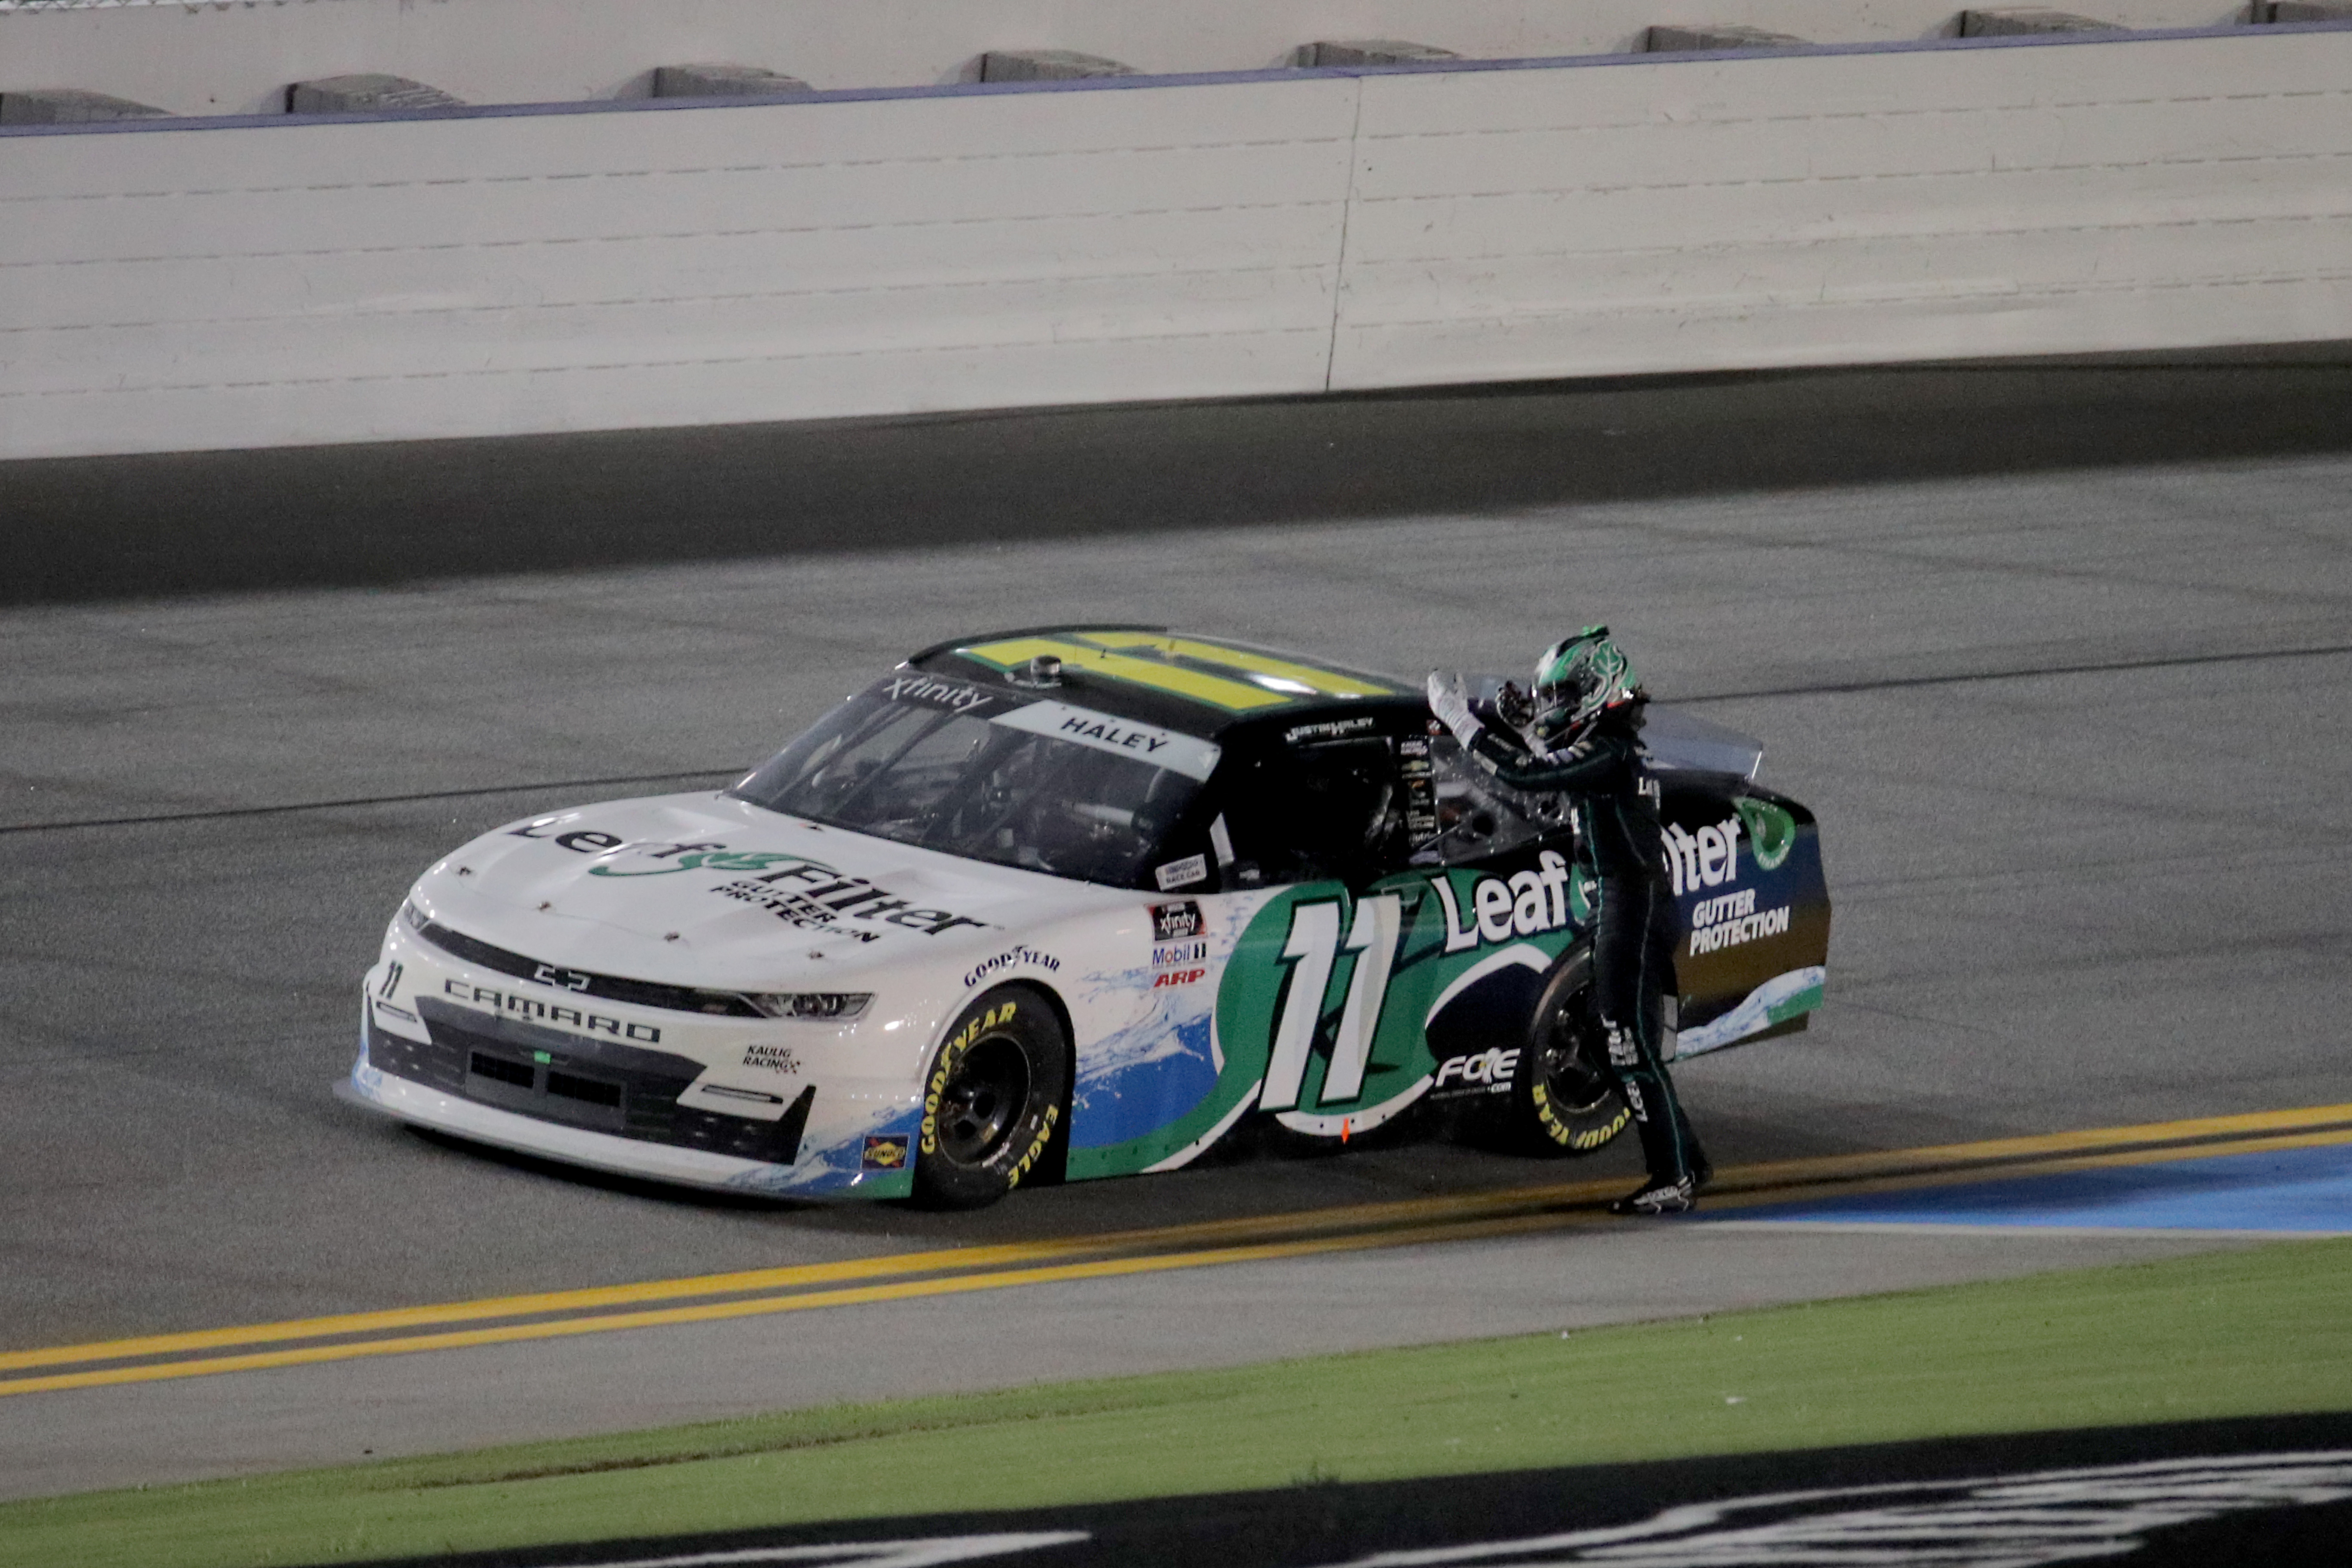 Justin Haley, driver of the #11 LeafFilter Gutter Protection Chevrolet, celebrates after winning the NASCAR Xfinity Series Wawa 250 Powered by Coca-Cola at Daytona International Speedway on August 28, 2020 in Daytona Beach, Florida.